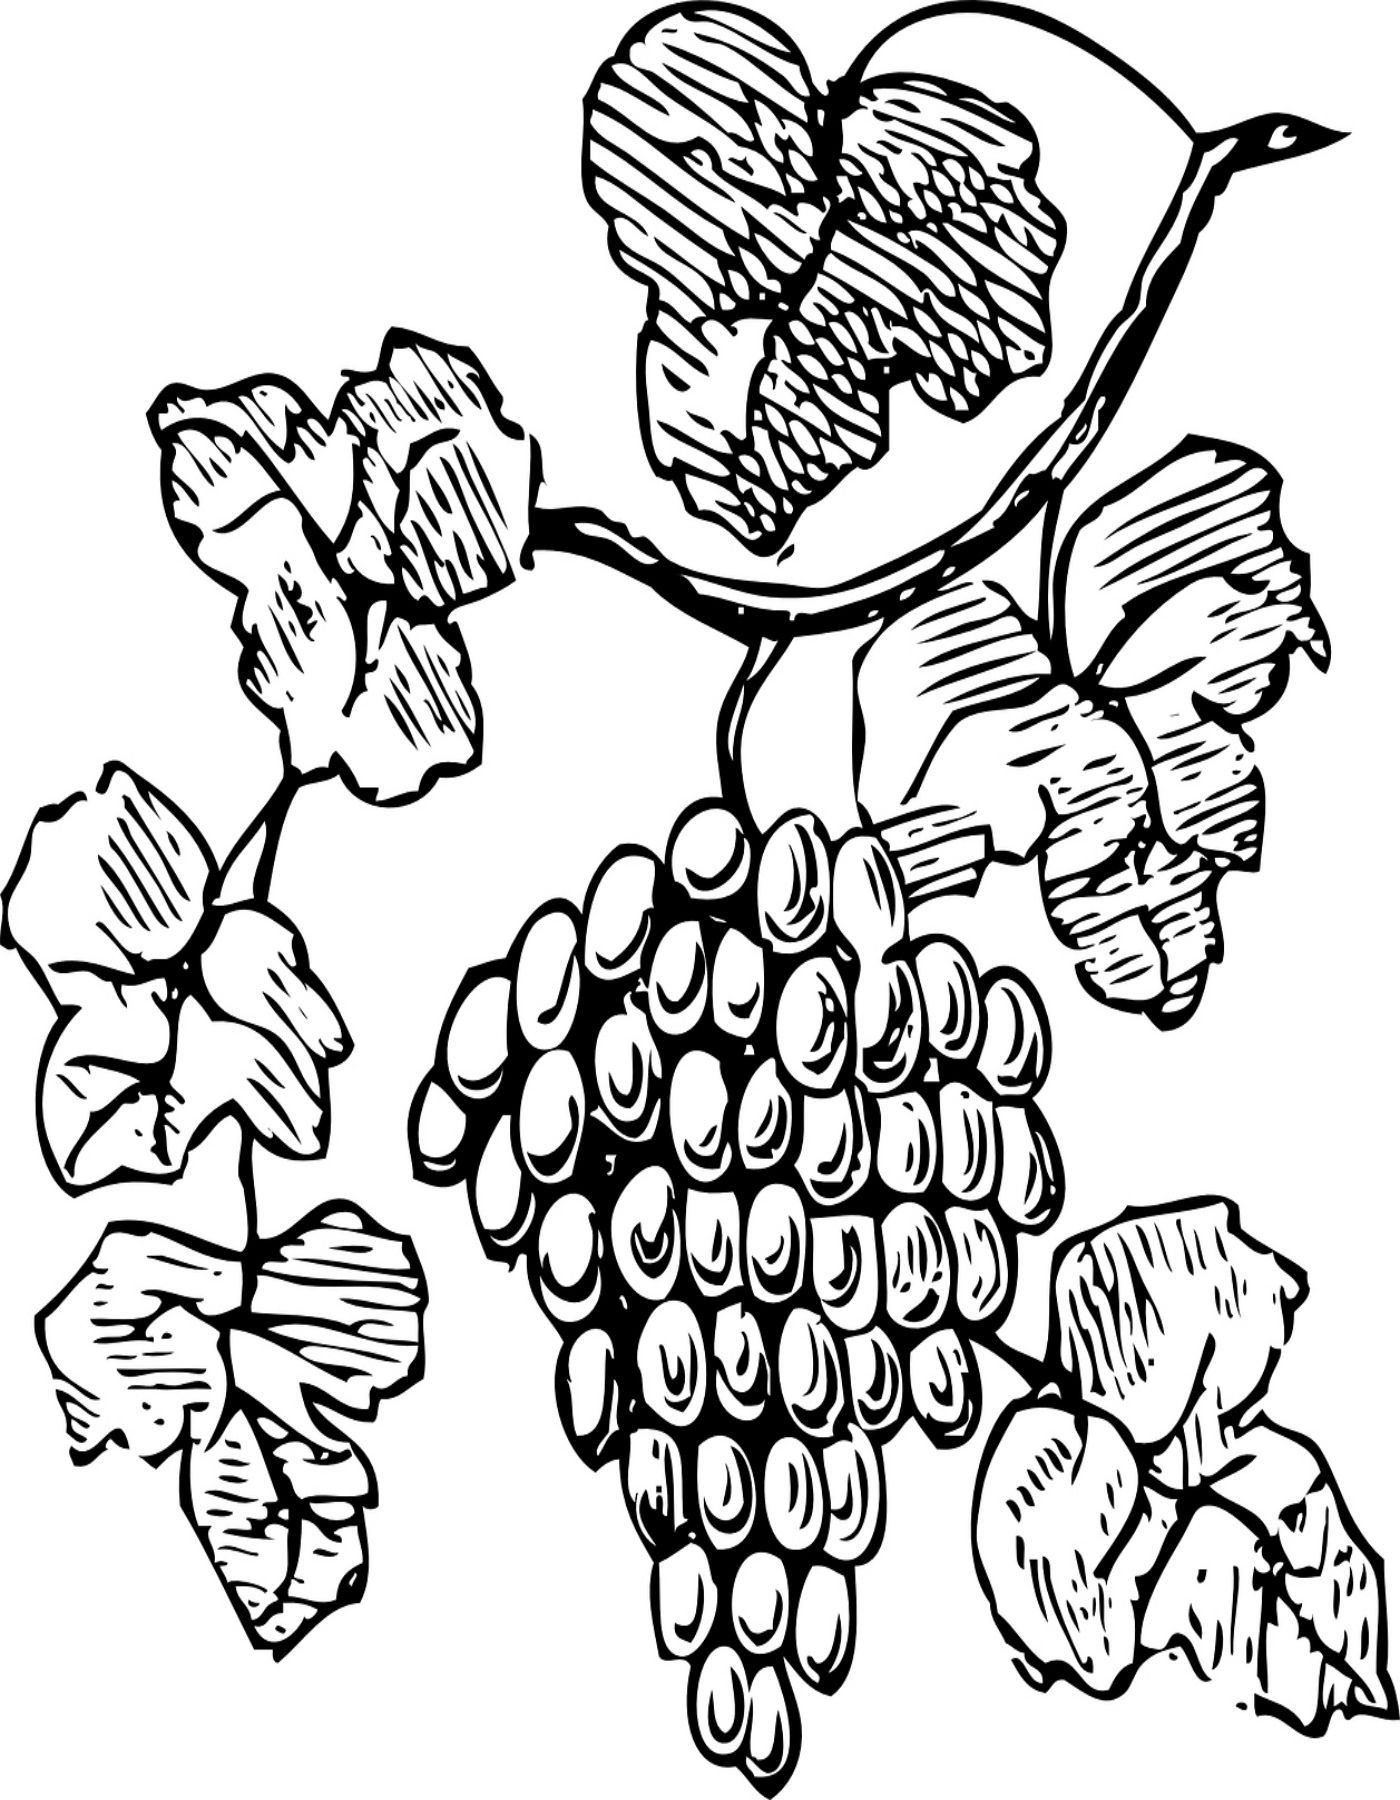 Free Printable Grapes Coloring Page | Arts N Crafts | Pinterest ...